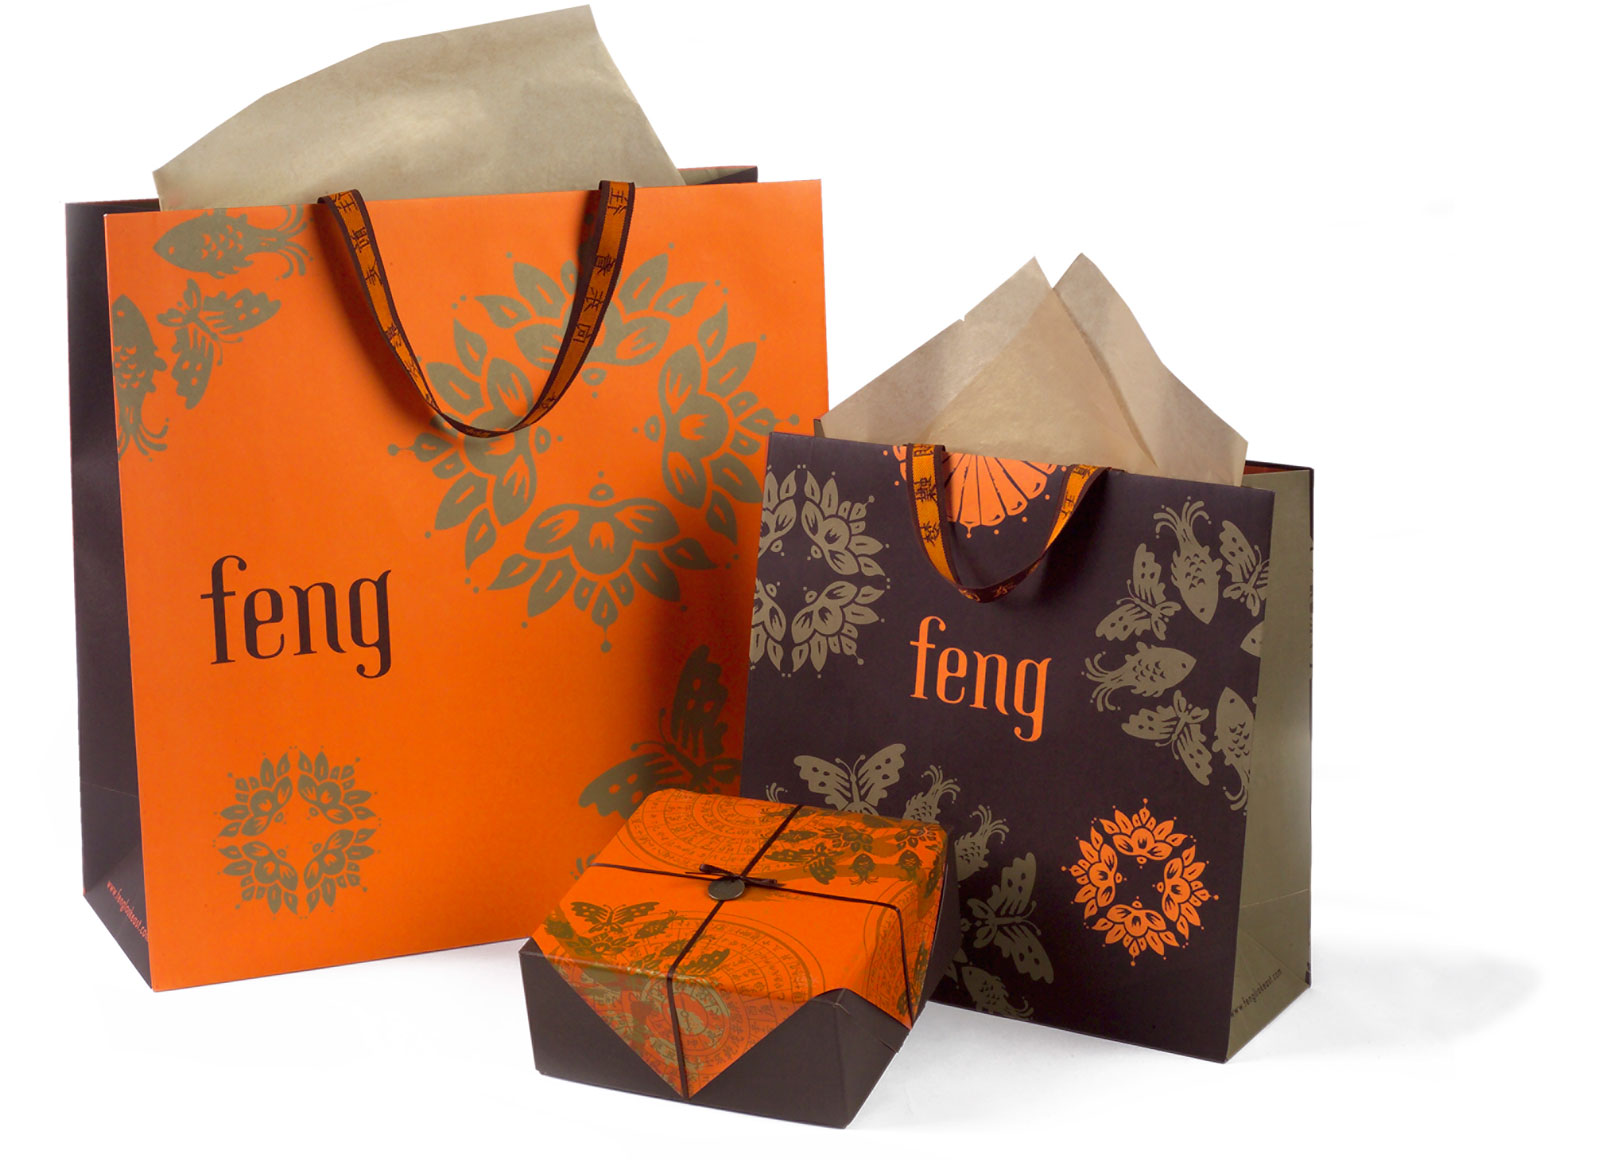 Feng Bags